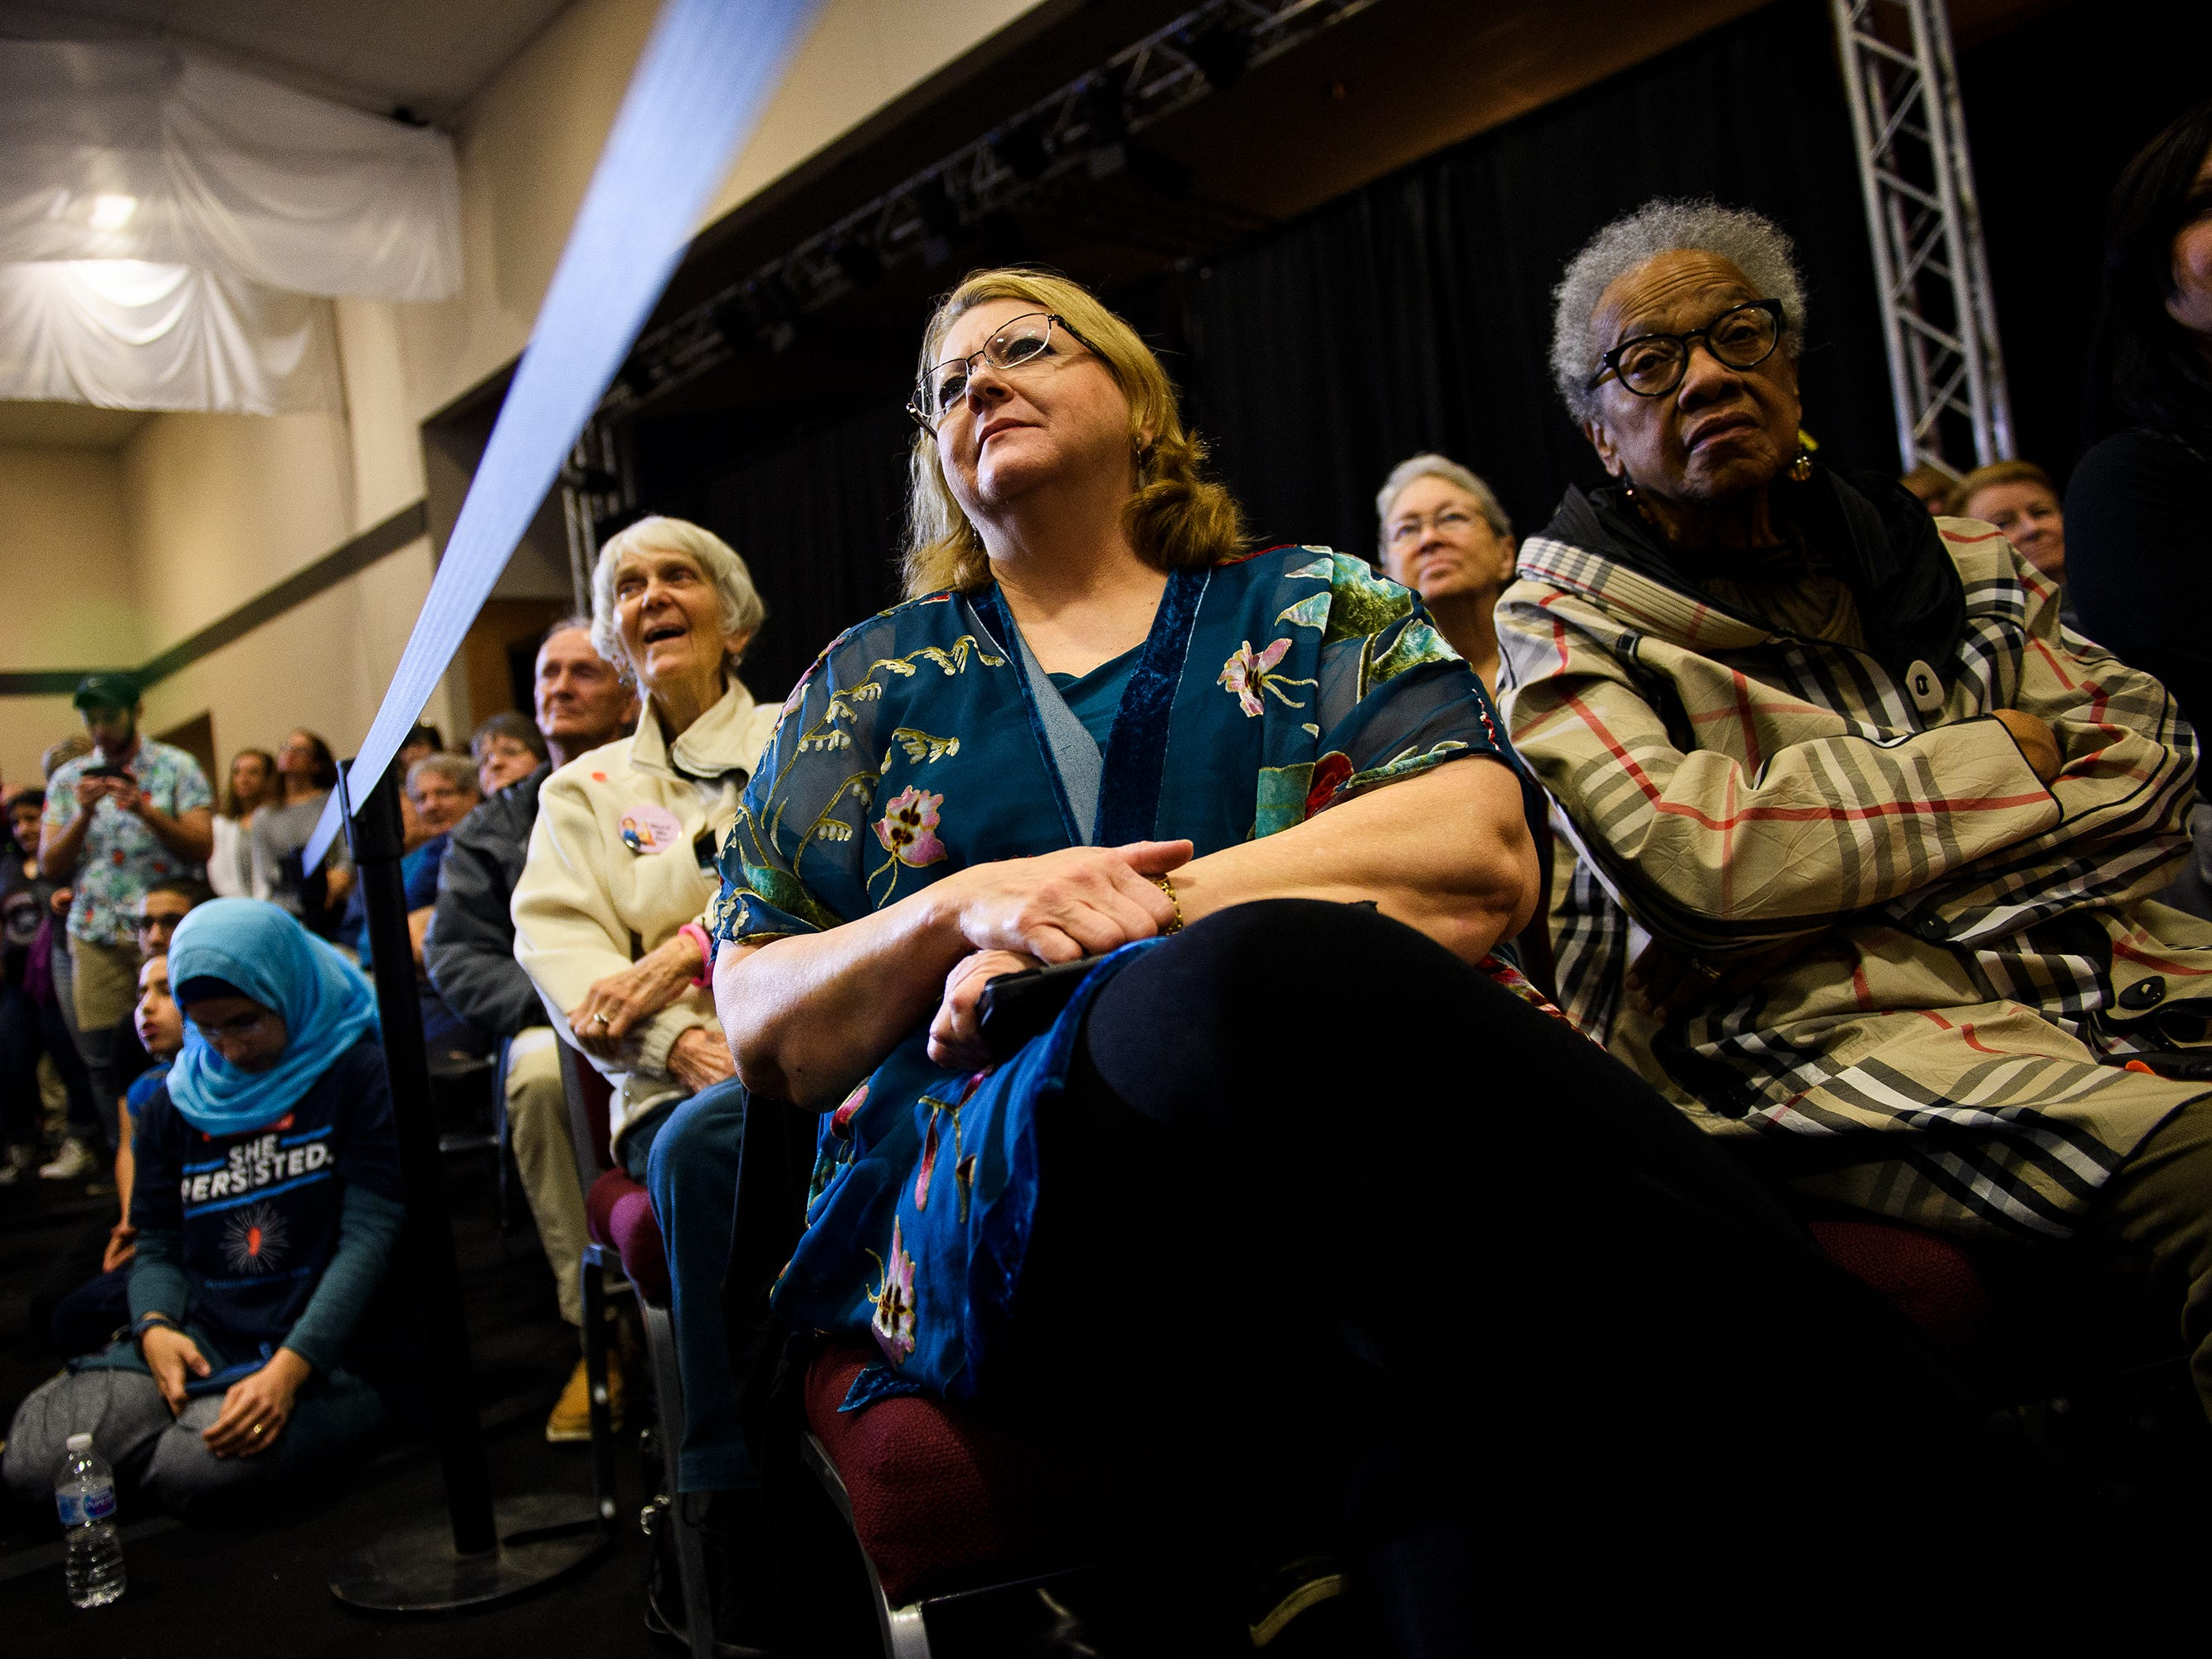 More than two hundred people listen to U.S. Sen. Elizabeth Warren speak during a campaign event at the West End Community Development Center in Greenville Saturday, Feb. 16, 2019.